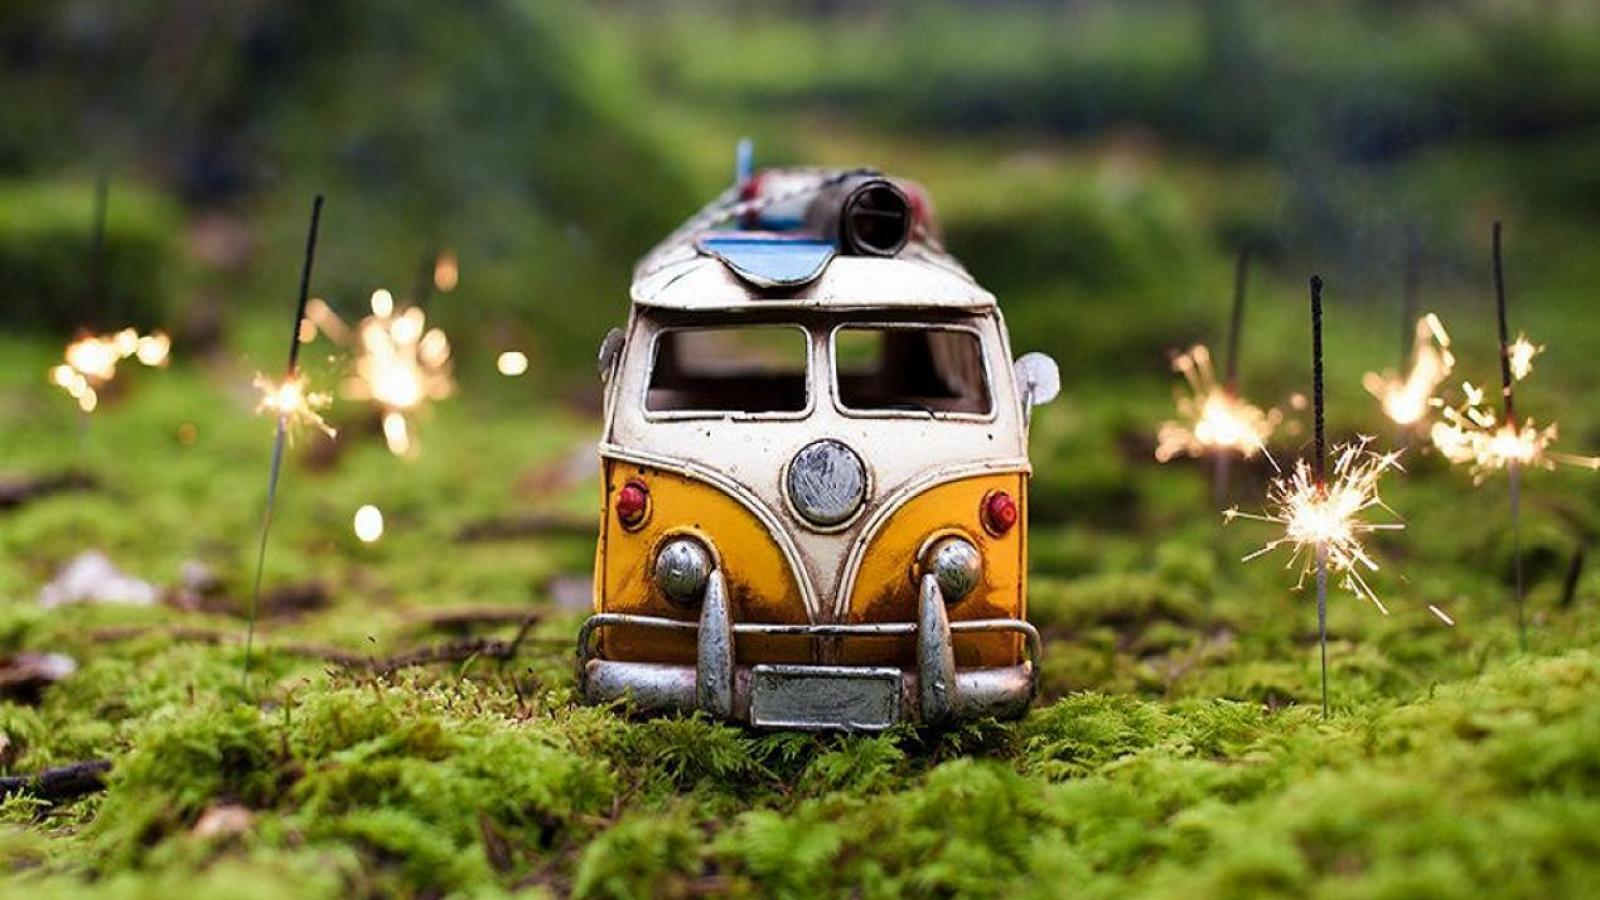 Cute Toy Car Wallpaper